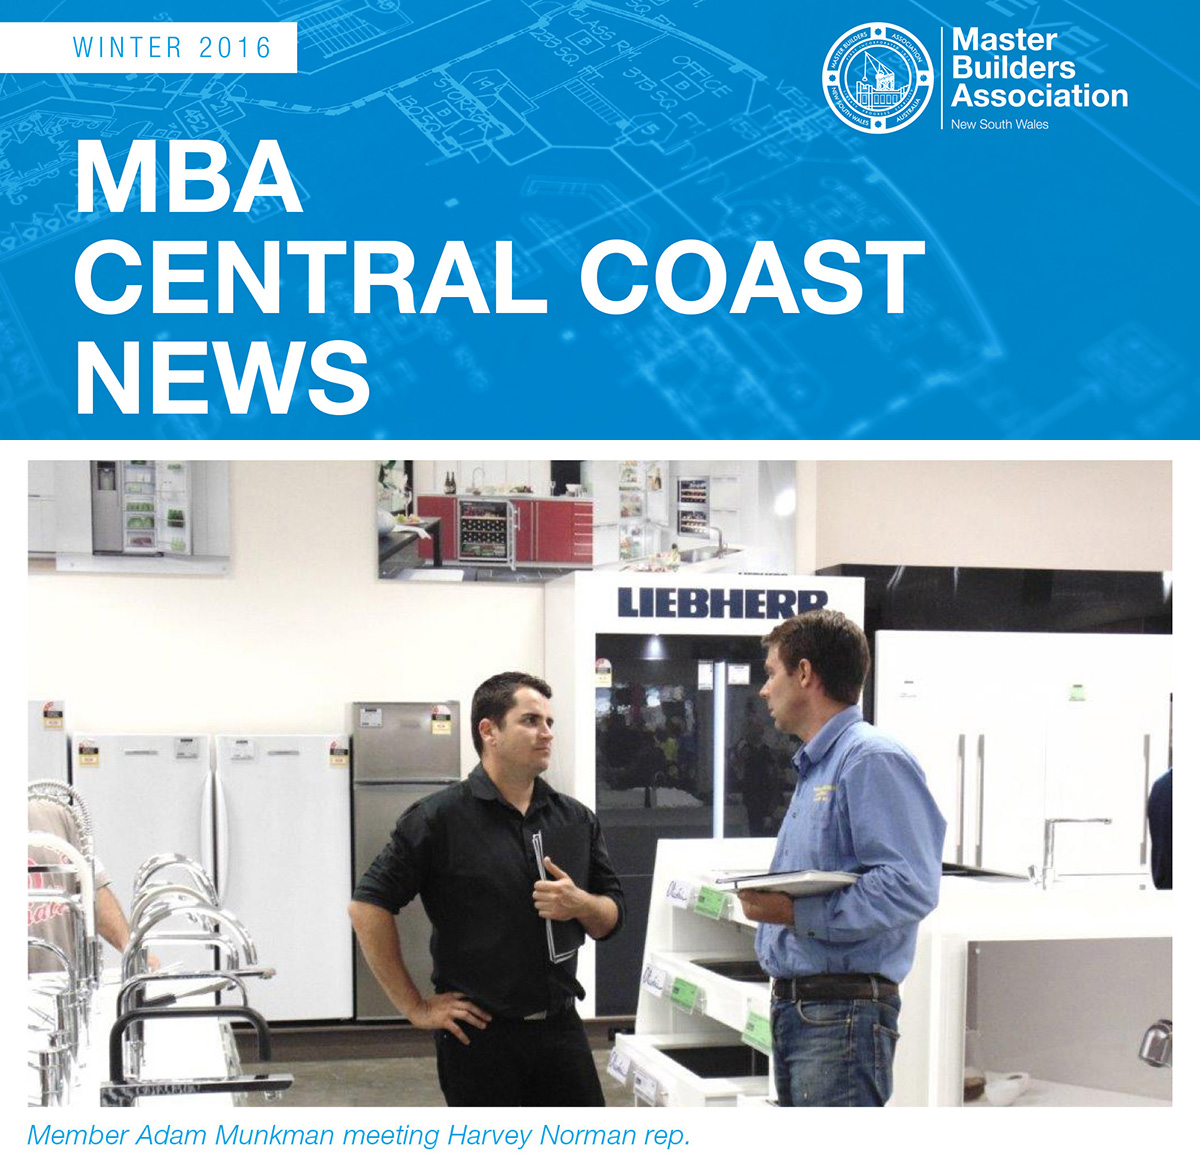 MBA CENTRAL COAST NEWS